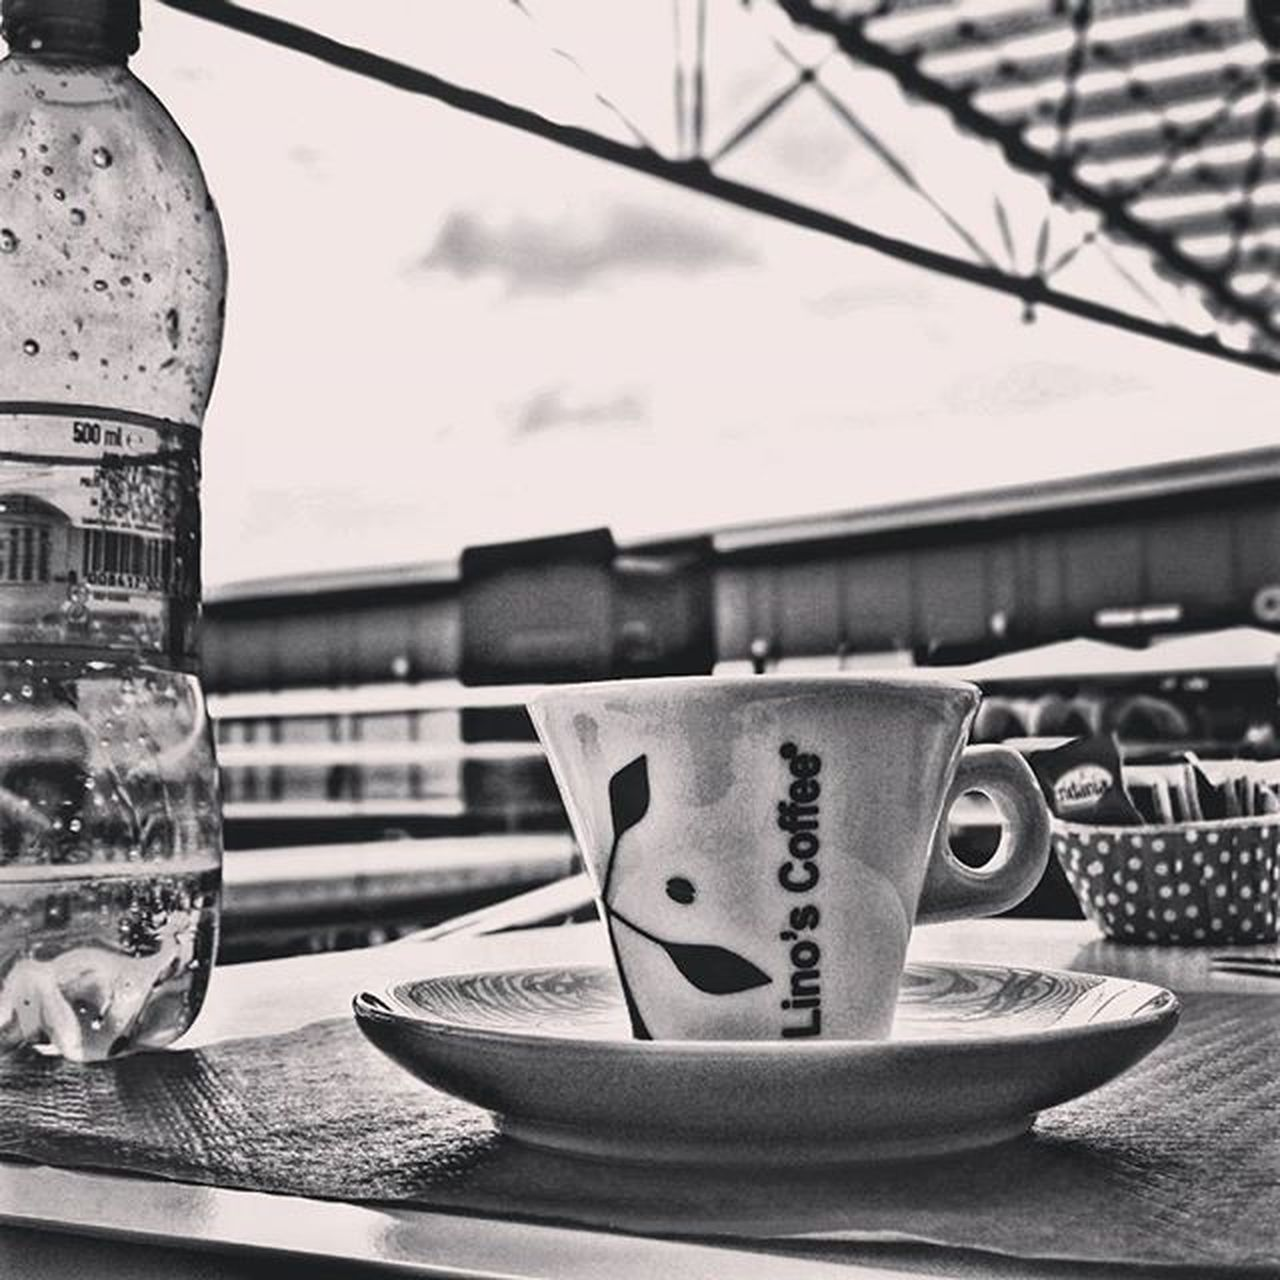 ⚫⚪Black & White Coffee ☕🍵 Caffè Cafelife Cafe Coffee_inst coffee coffeeshots caffeine bnw_captures blackandwhite igsccities bnw_life ig_europe global_hotshotz kings_hdr magic_photography hdr_lovers loves_italia bnw_globe ig_great_pics citypicz italy manmakecoffee hdr insta_sky_lovers bnw_society ig_italia icu_hdr ig_parma bnw espresso